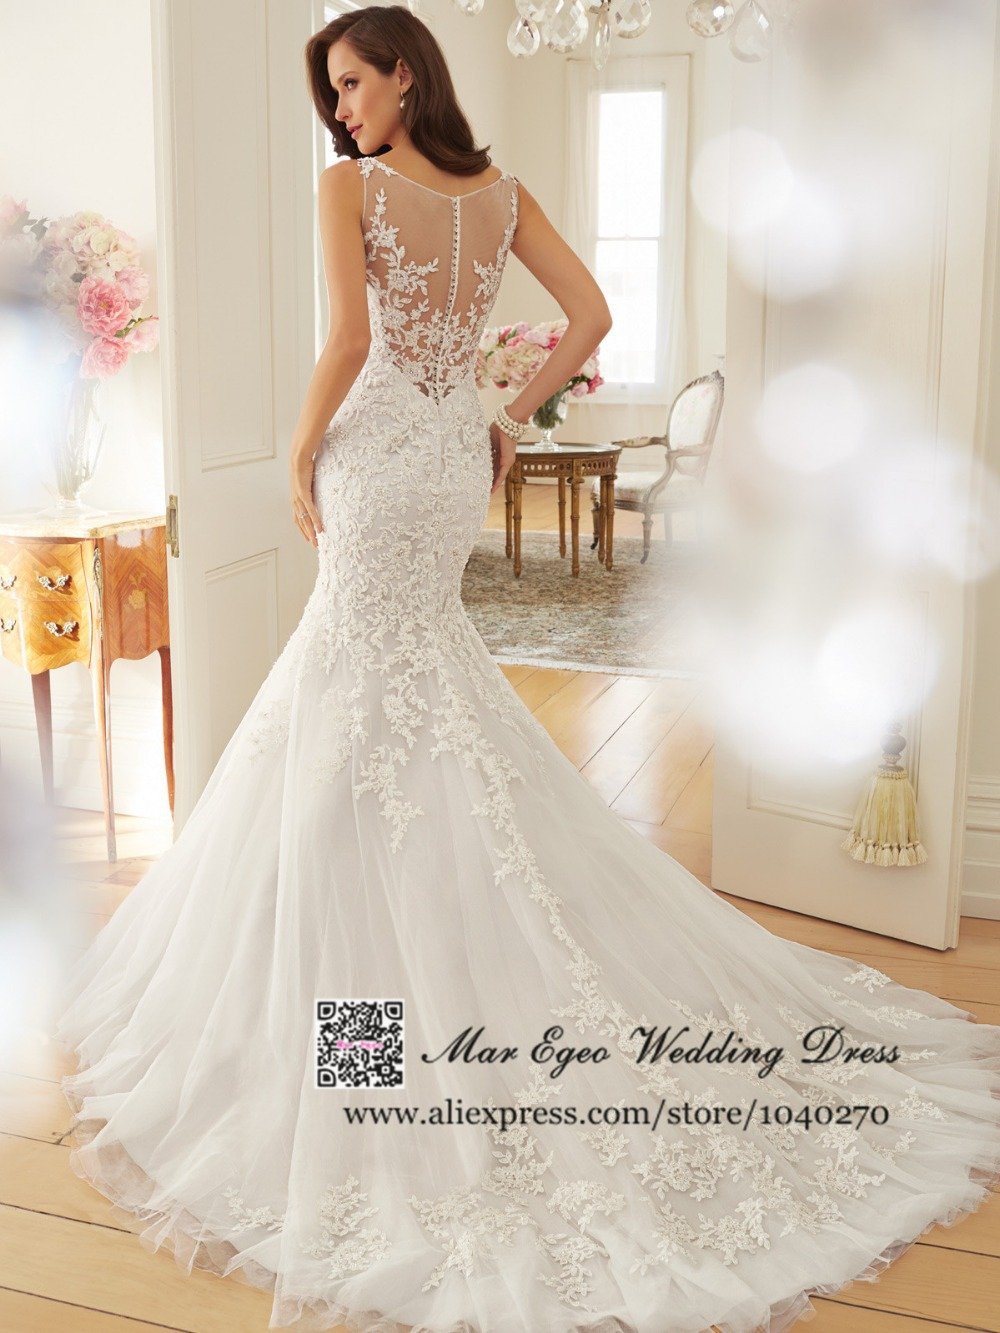 colored wedding gown see through wedding dresses See Through Wedding Gowns